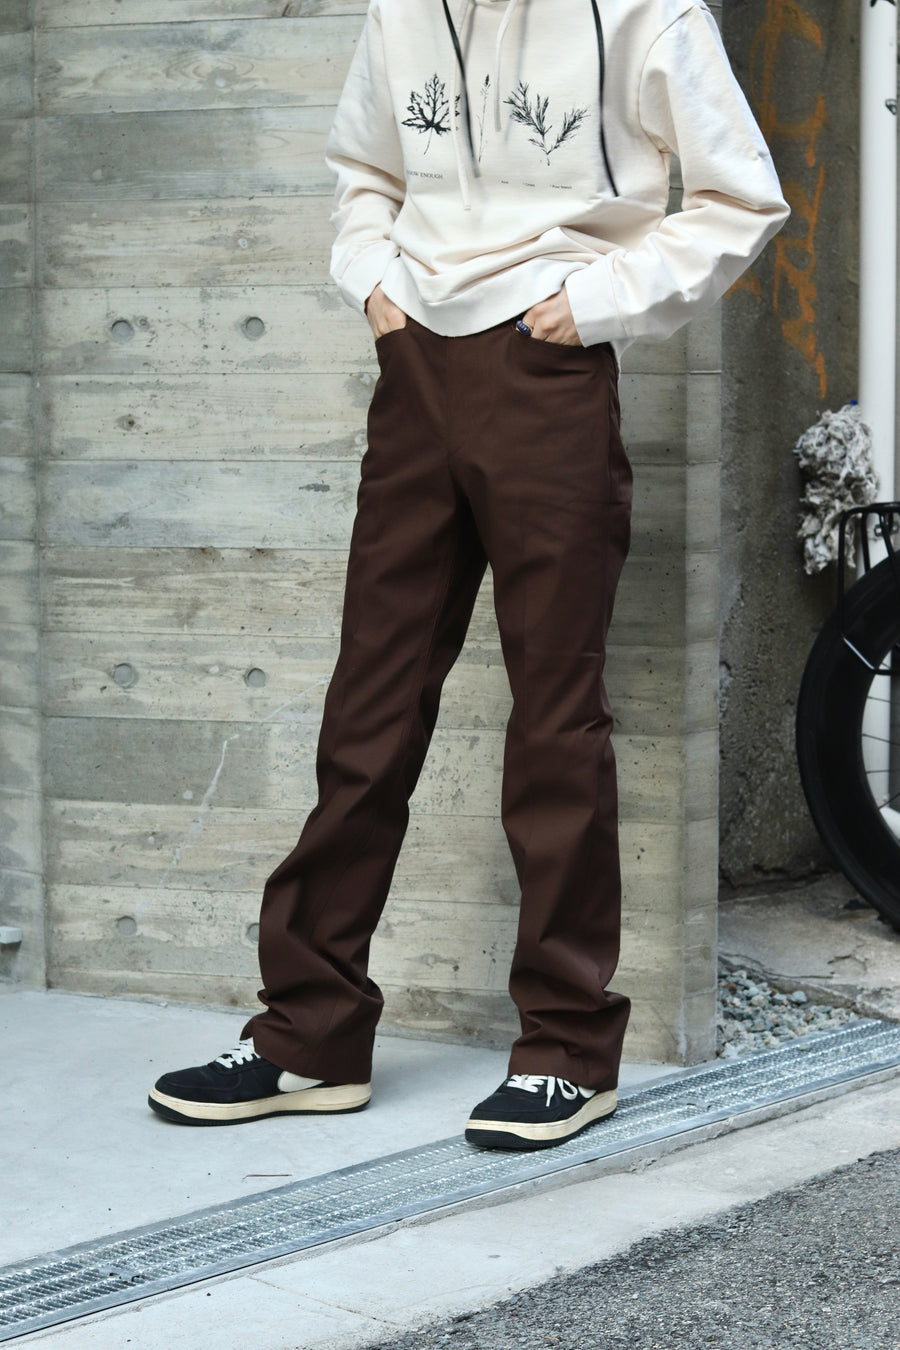 LITTLEBIG  T/C Bootscut Pants (White or Black or Brown)